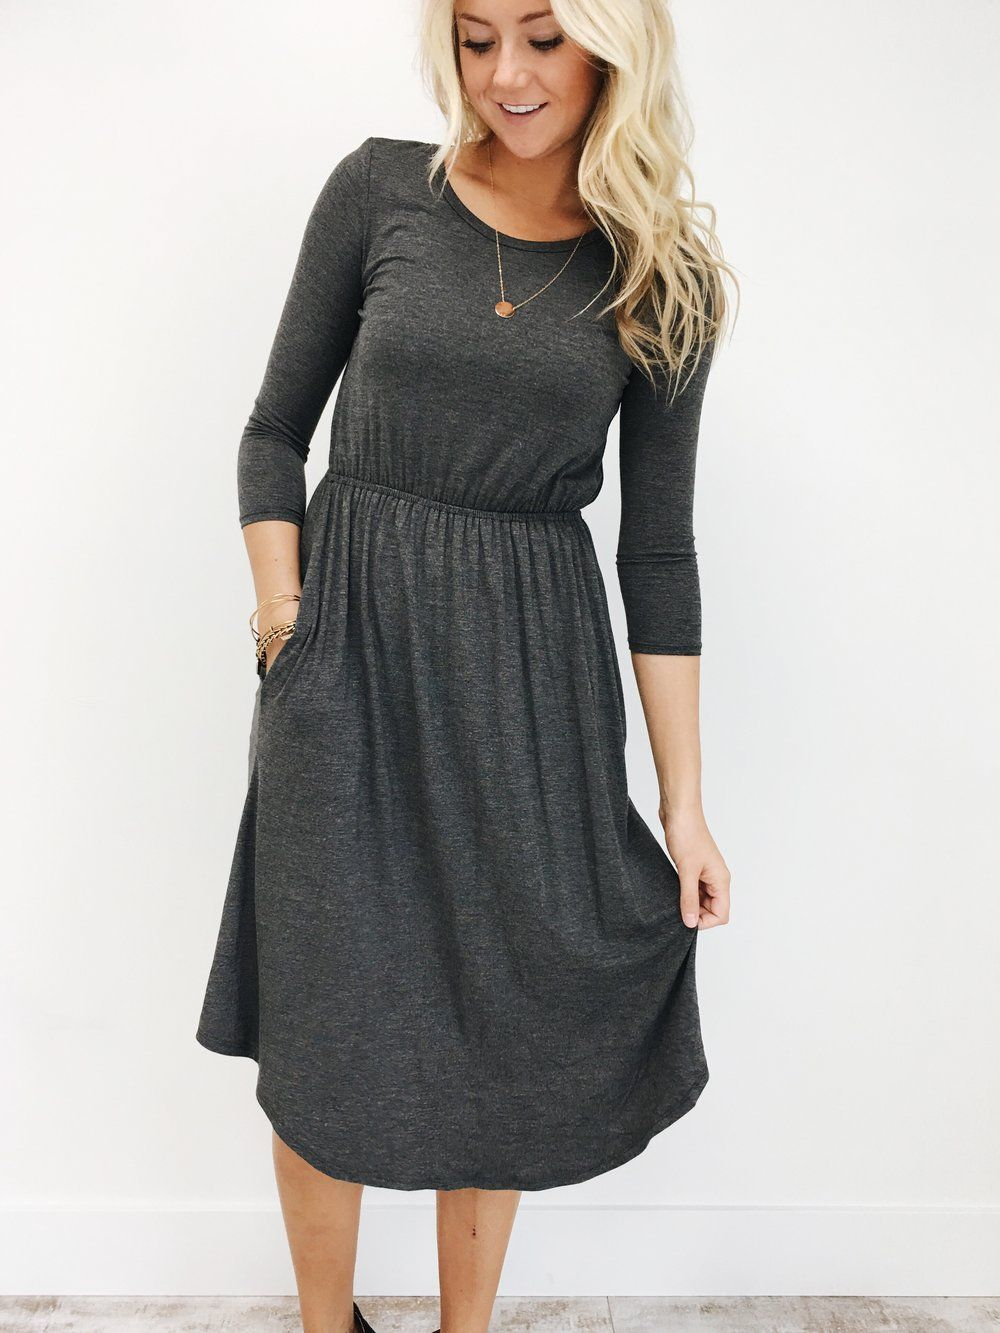 1a2679ce862 Charcoal 3 4 Sleeve Midi Dress Pockets + Elastic Waistband Extremely Soft  Material Fits True to Size Also Available in Black